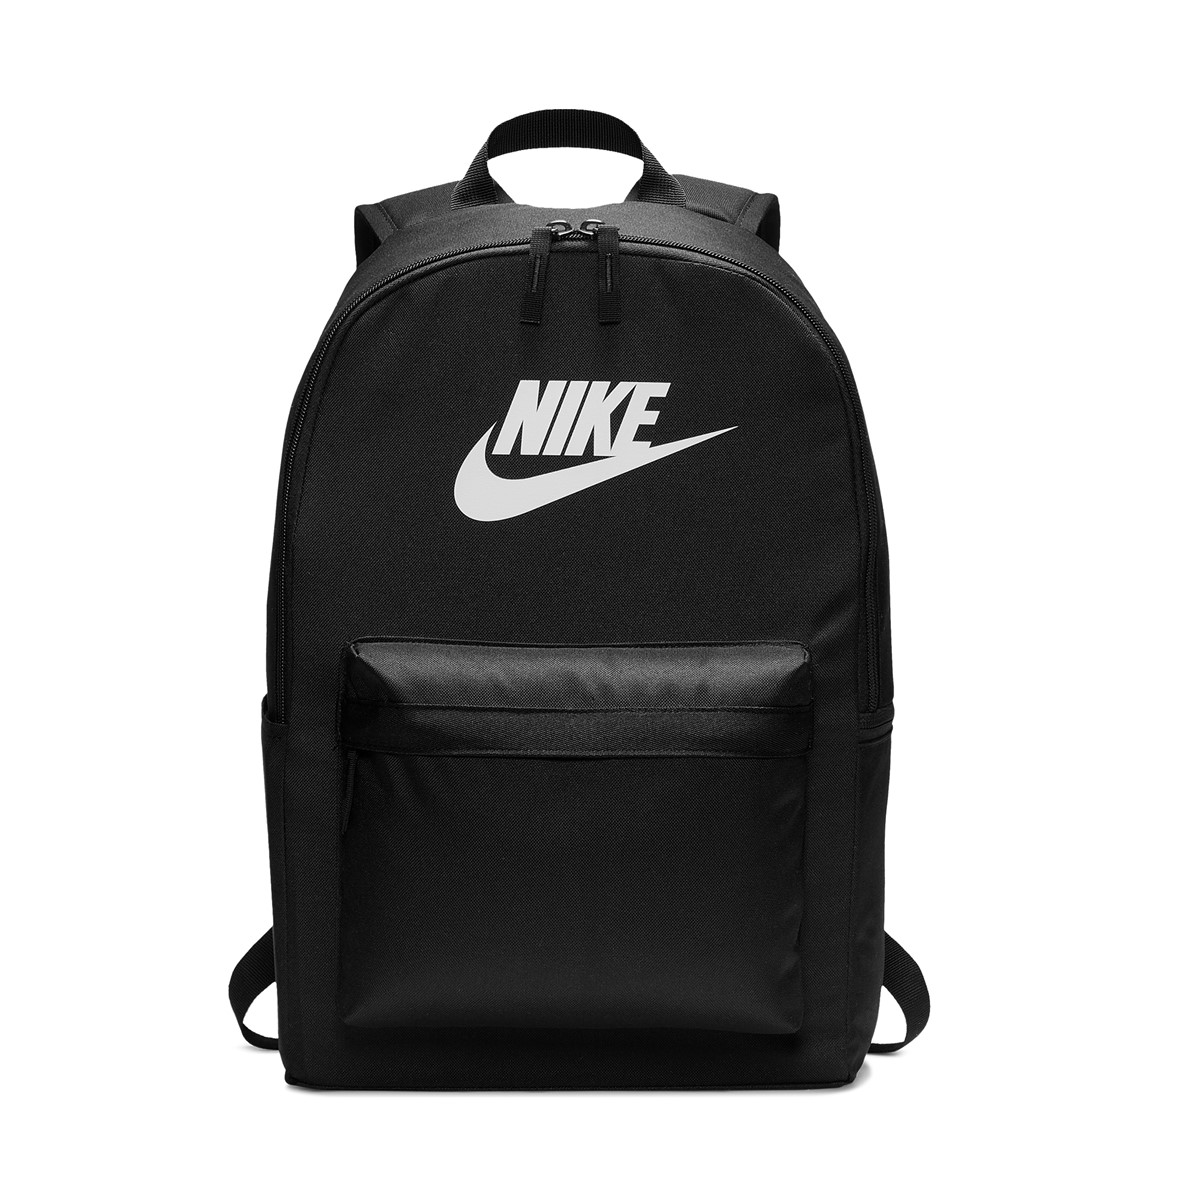 Heritage 2.0 Backpack in Black